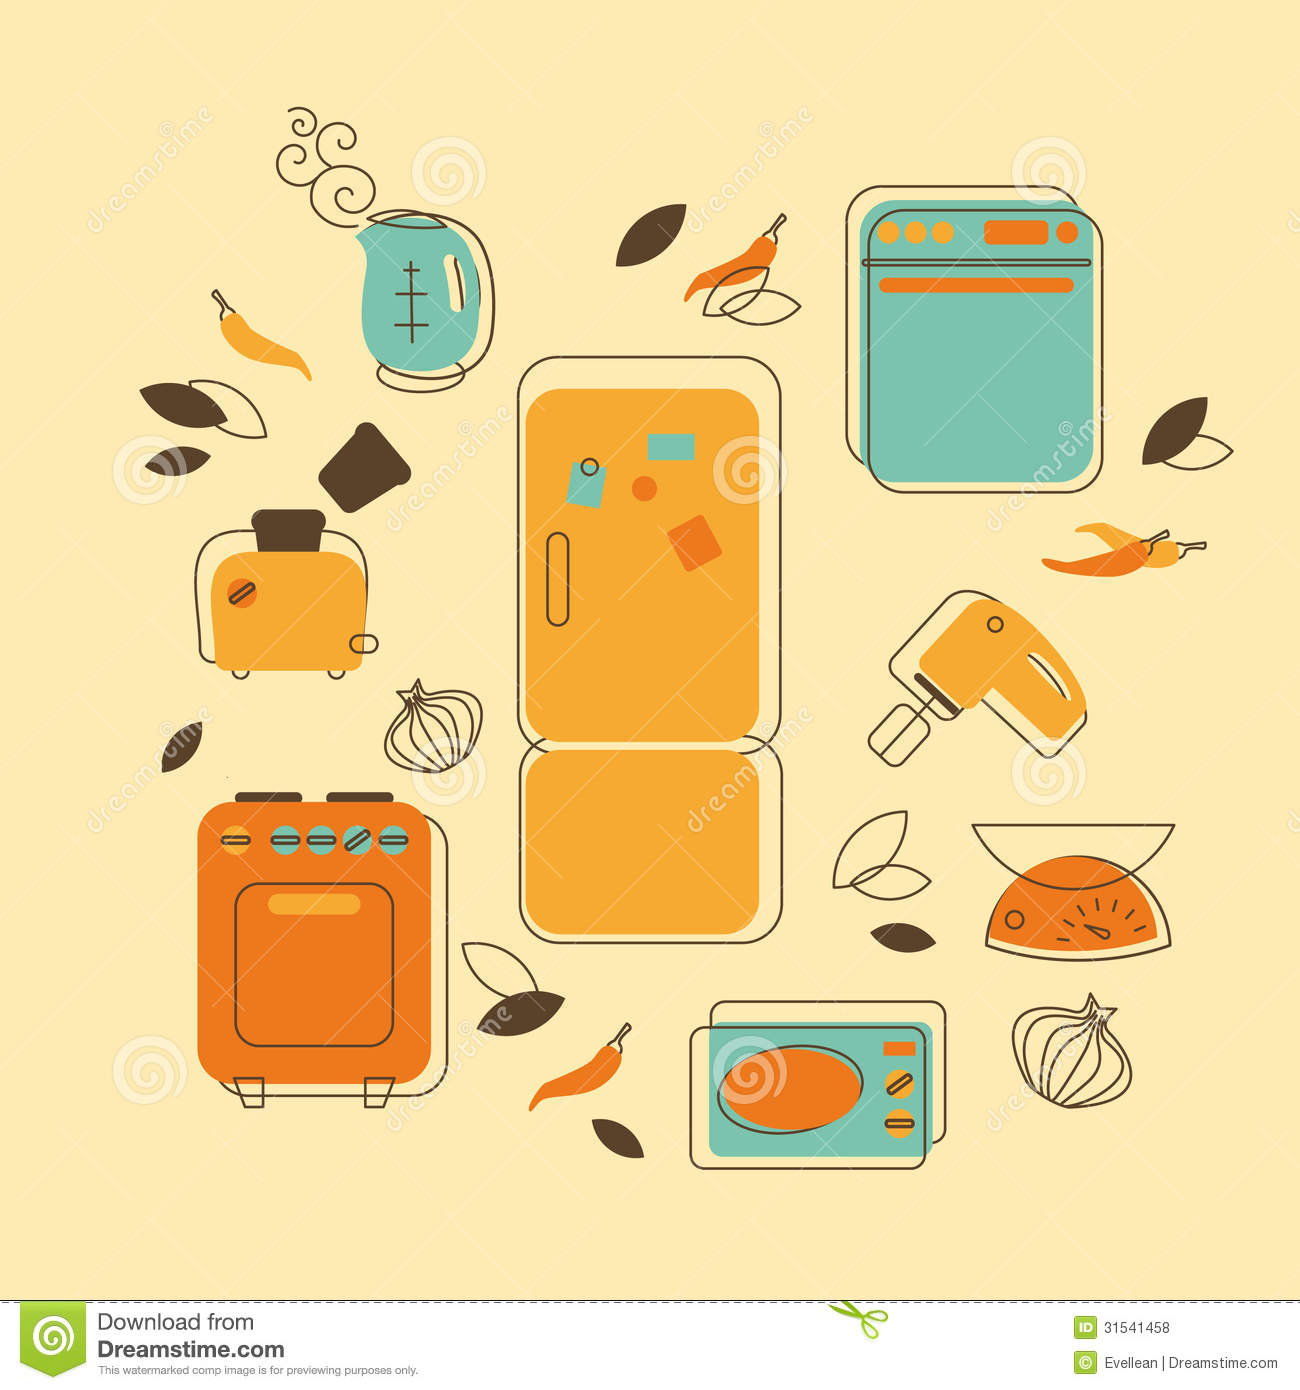 Retro Kitchen Illustration: Household Appliances Royalty Free Stock Photos